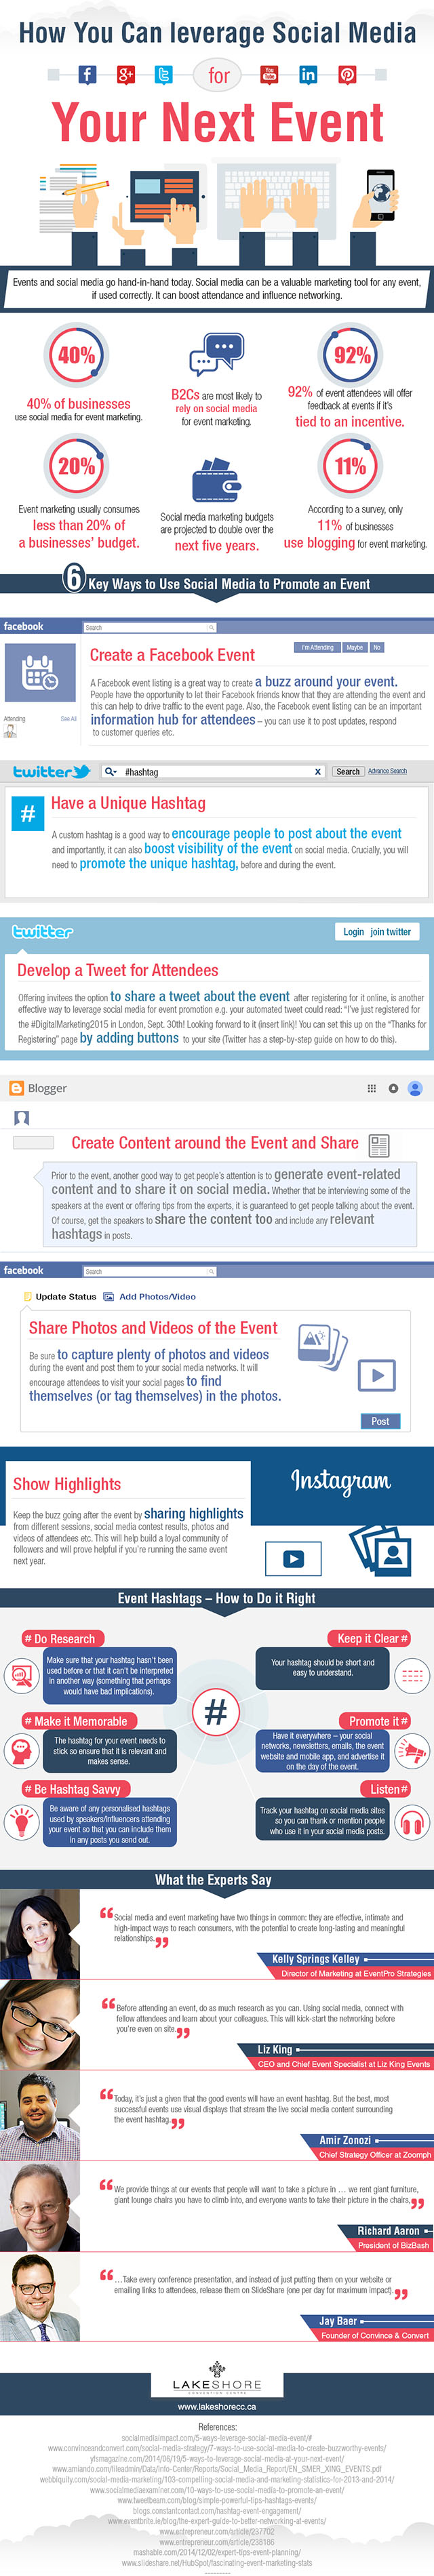 how-to-leverage-social-media-for-your-next-event-infographic-640w